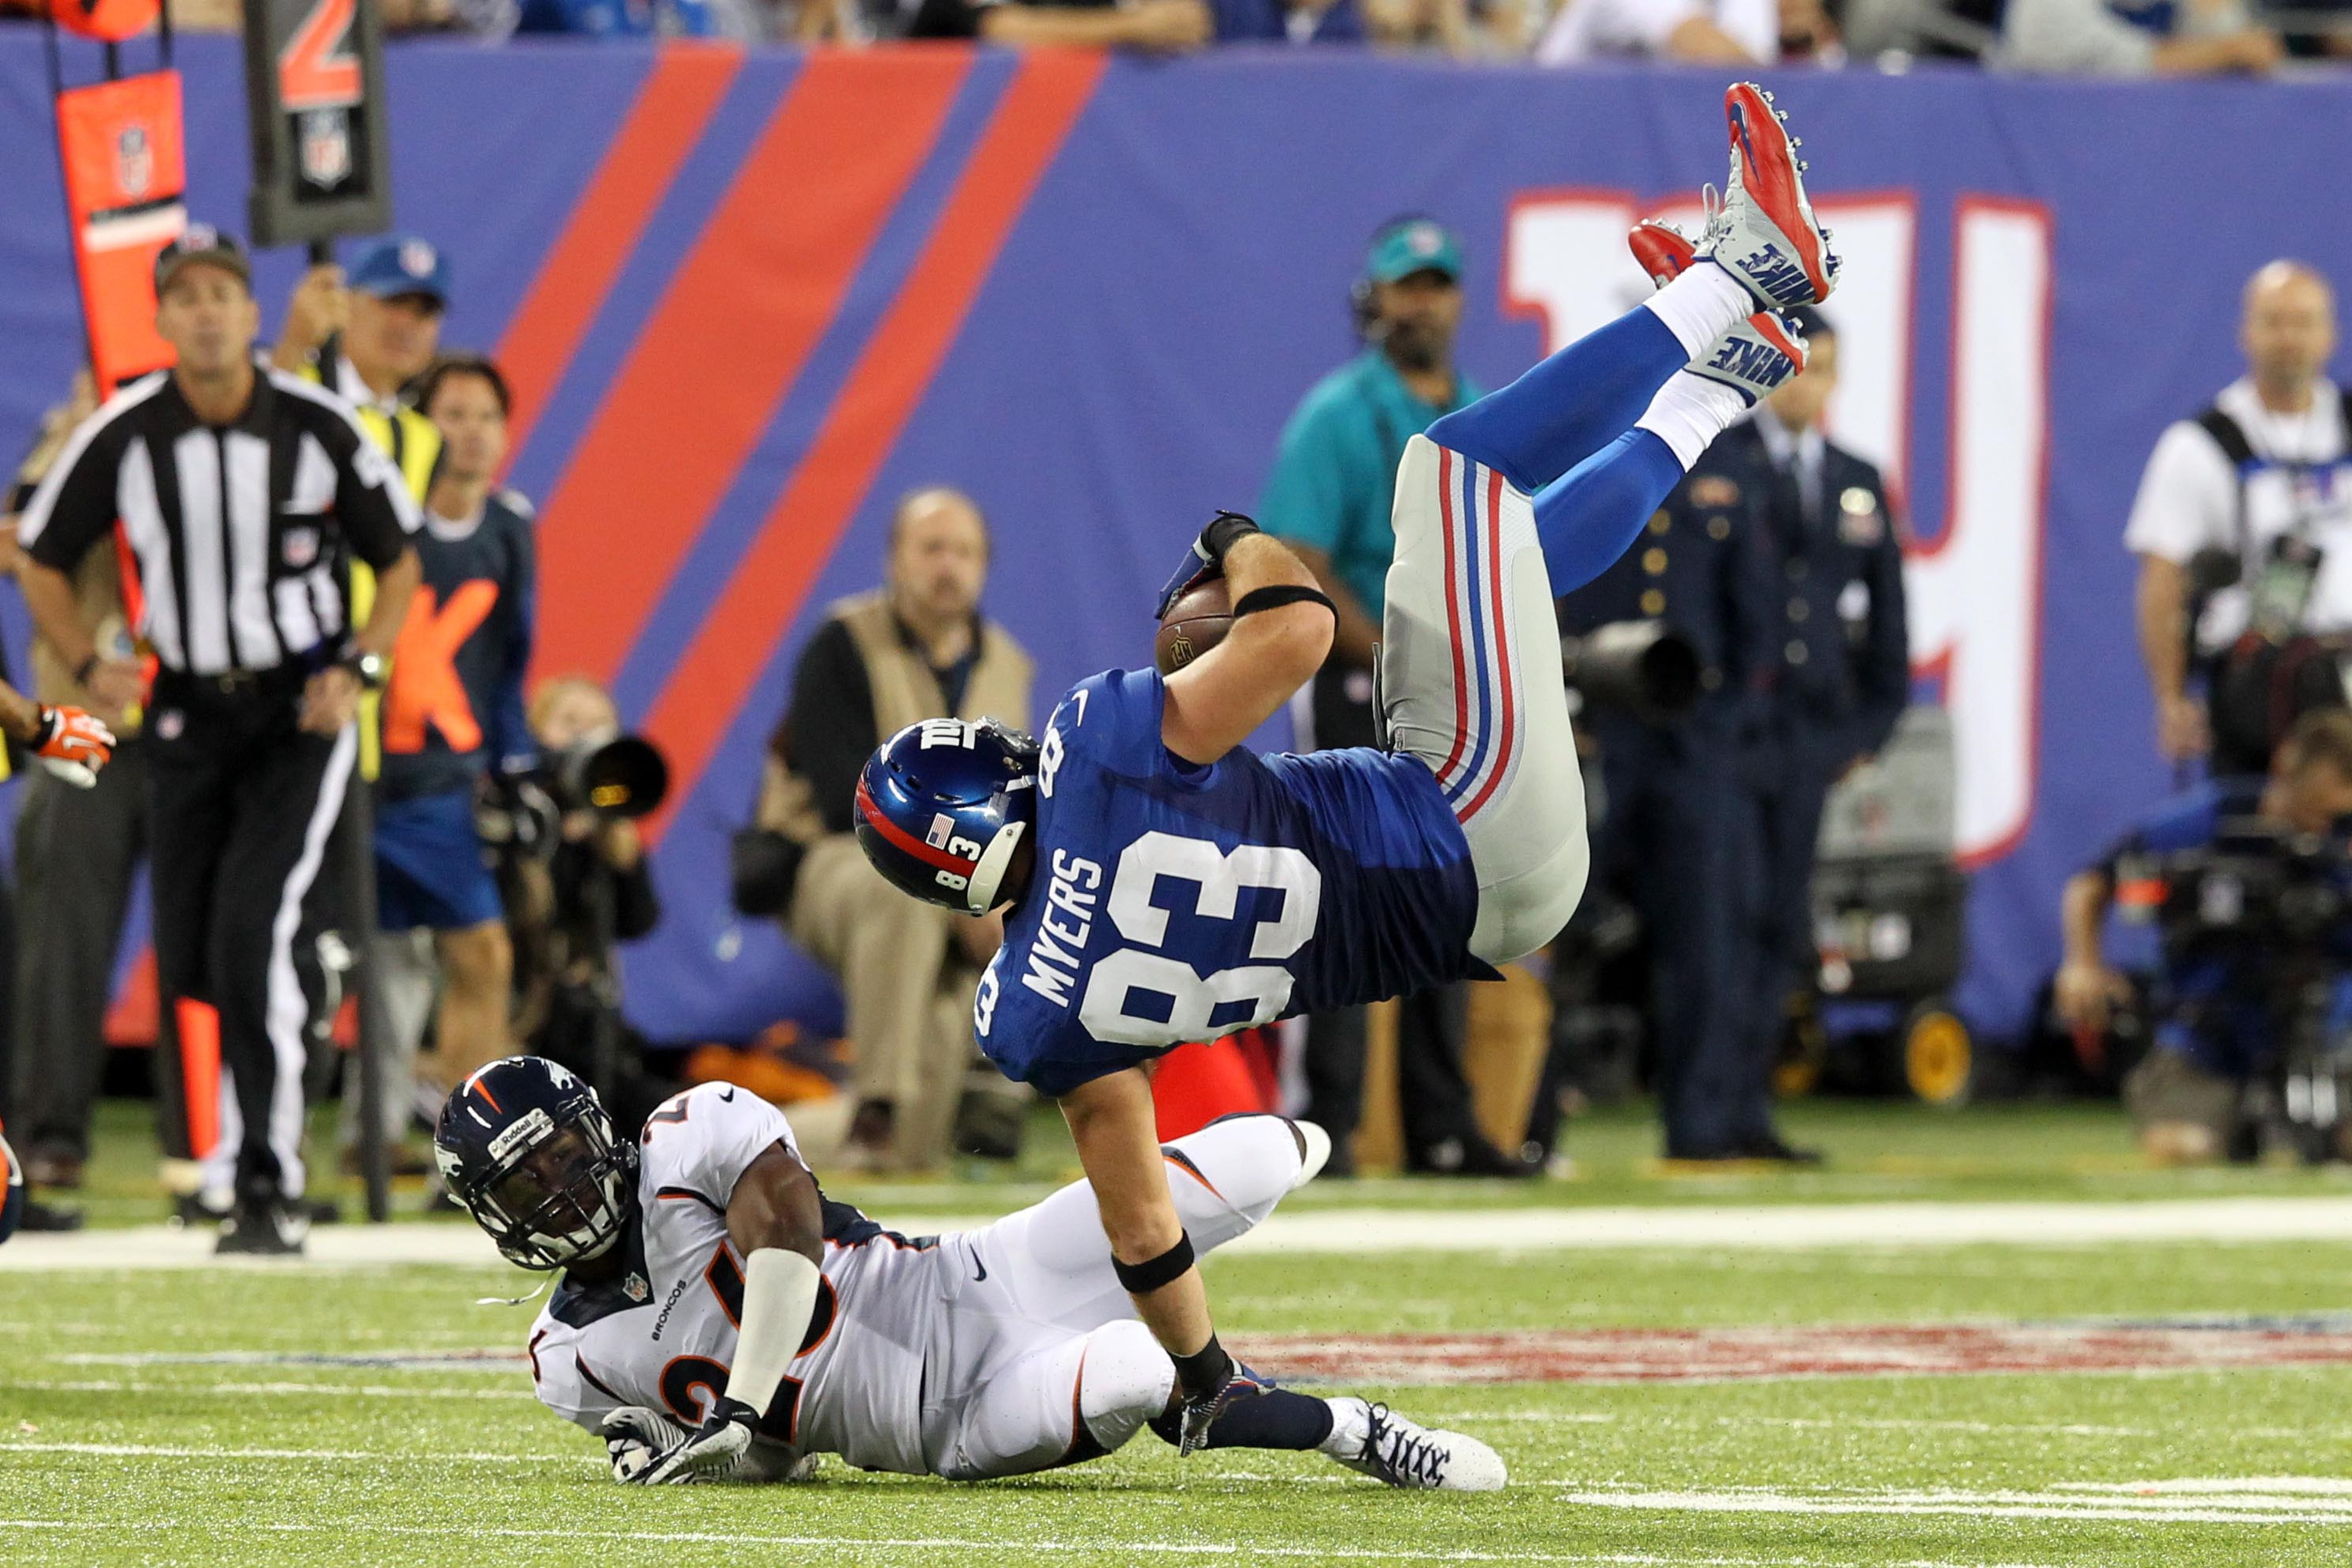 Brandon Myers is not on the giants' injury report despite hits like this one Sunday vs. Denver.